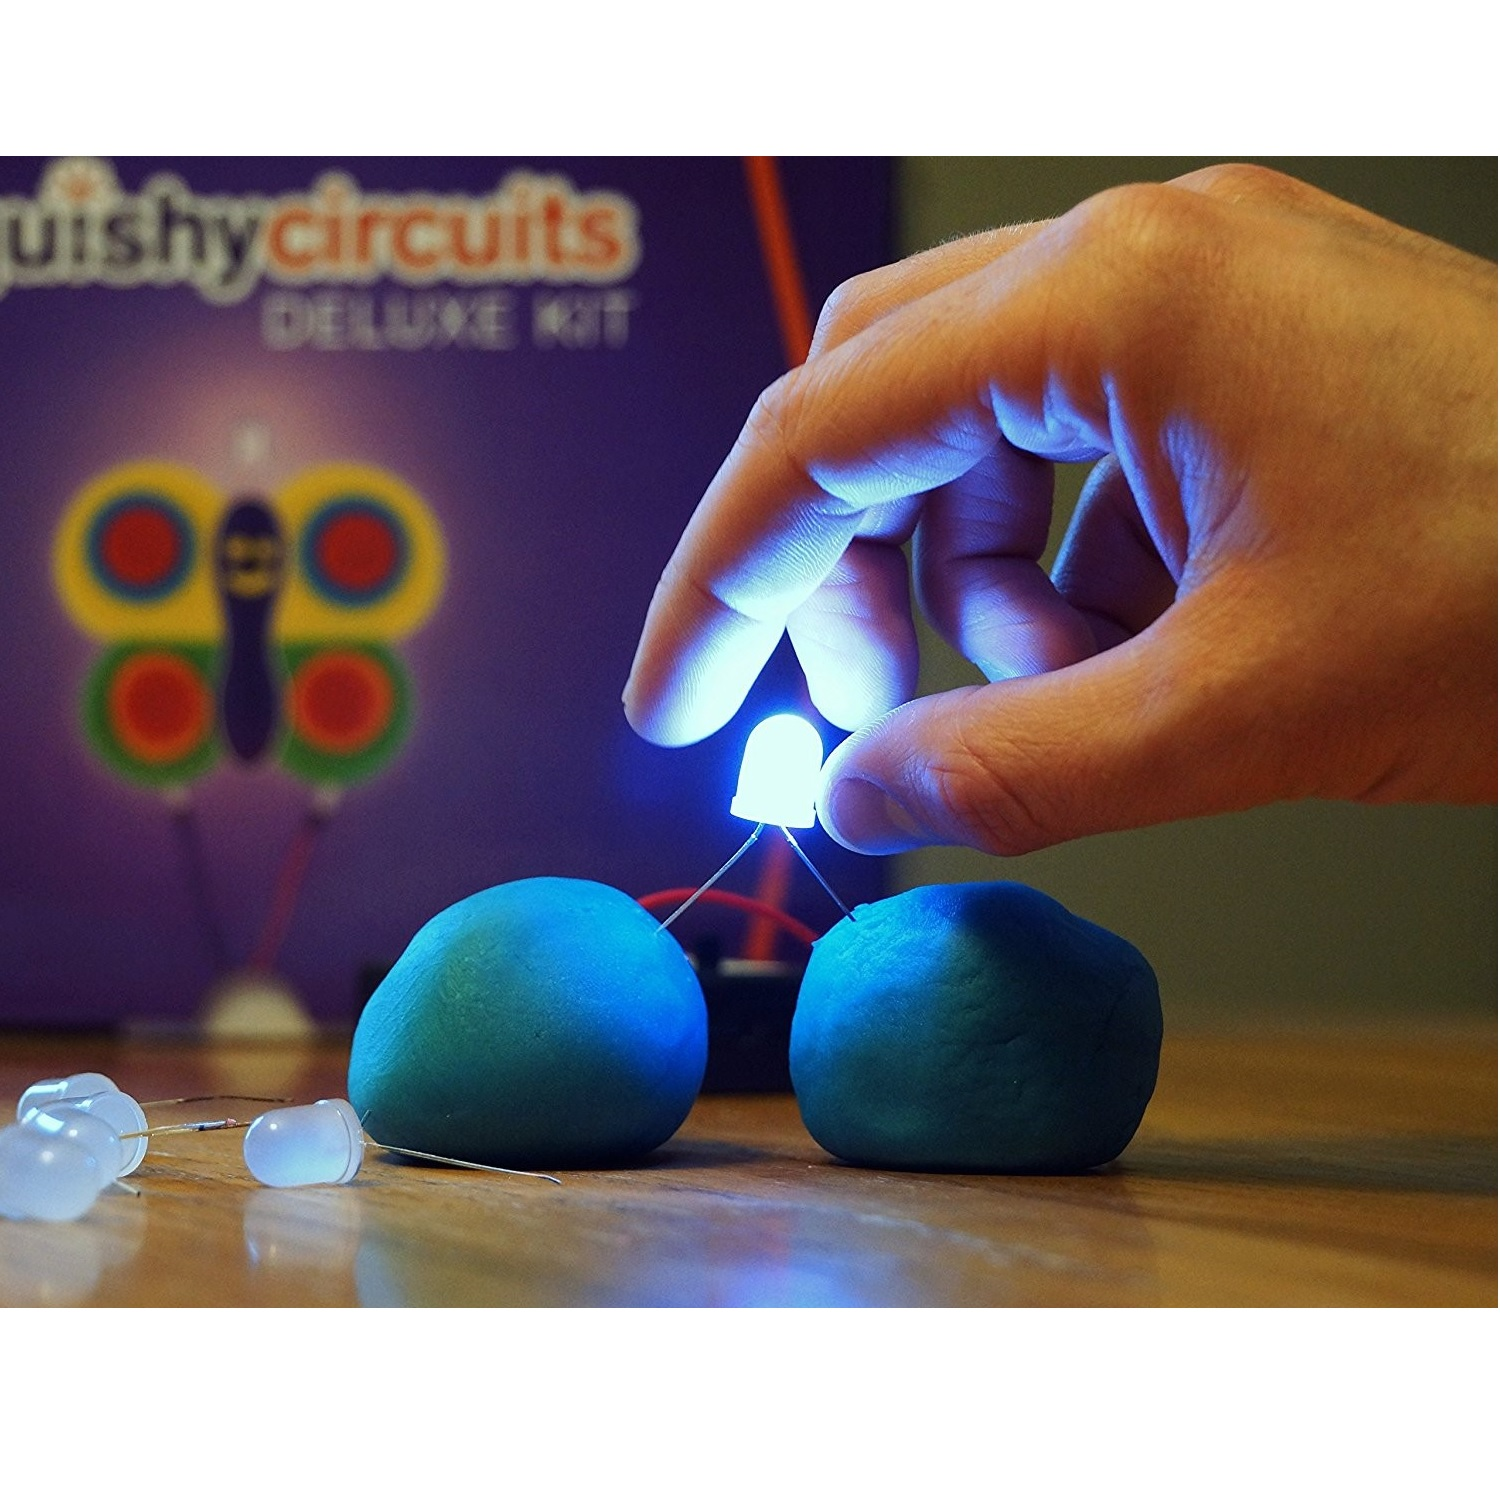 Squishy Circuits Deluxe Project